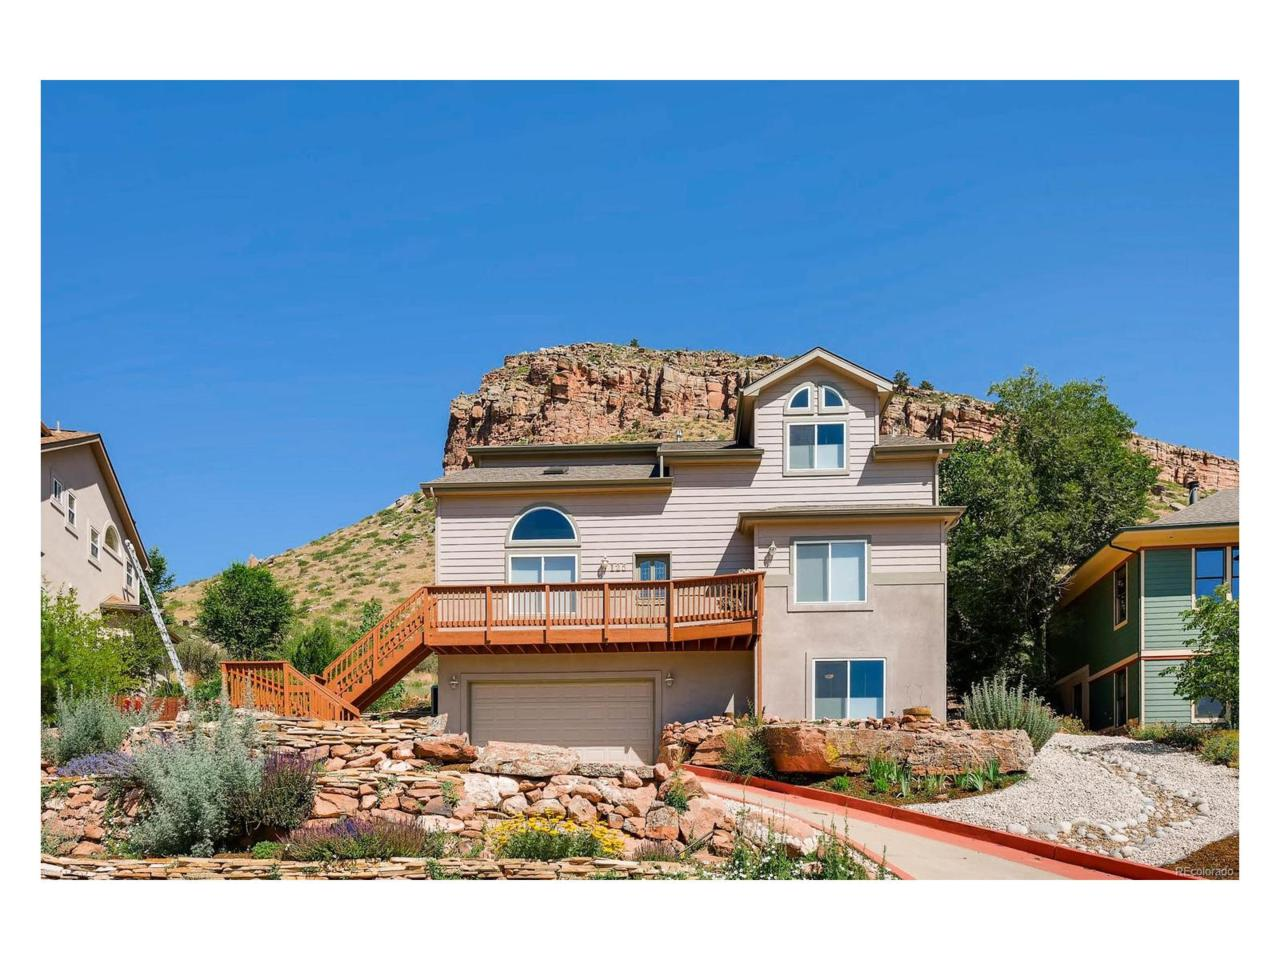 125 Eagle Canyon Circle, Lyons, CO 80540 (MLS #1537115) :: 8z Real Estate